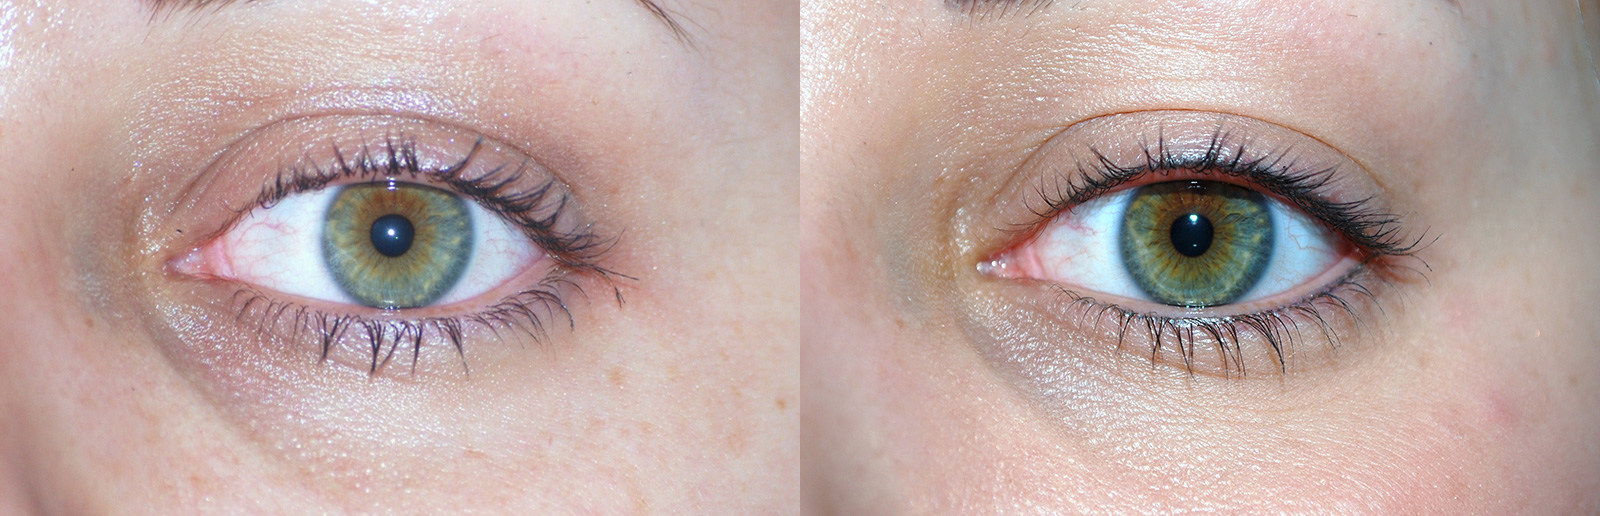 Permanent-Eyeliner-Before-After-2